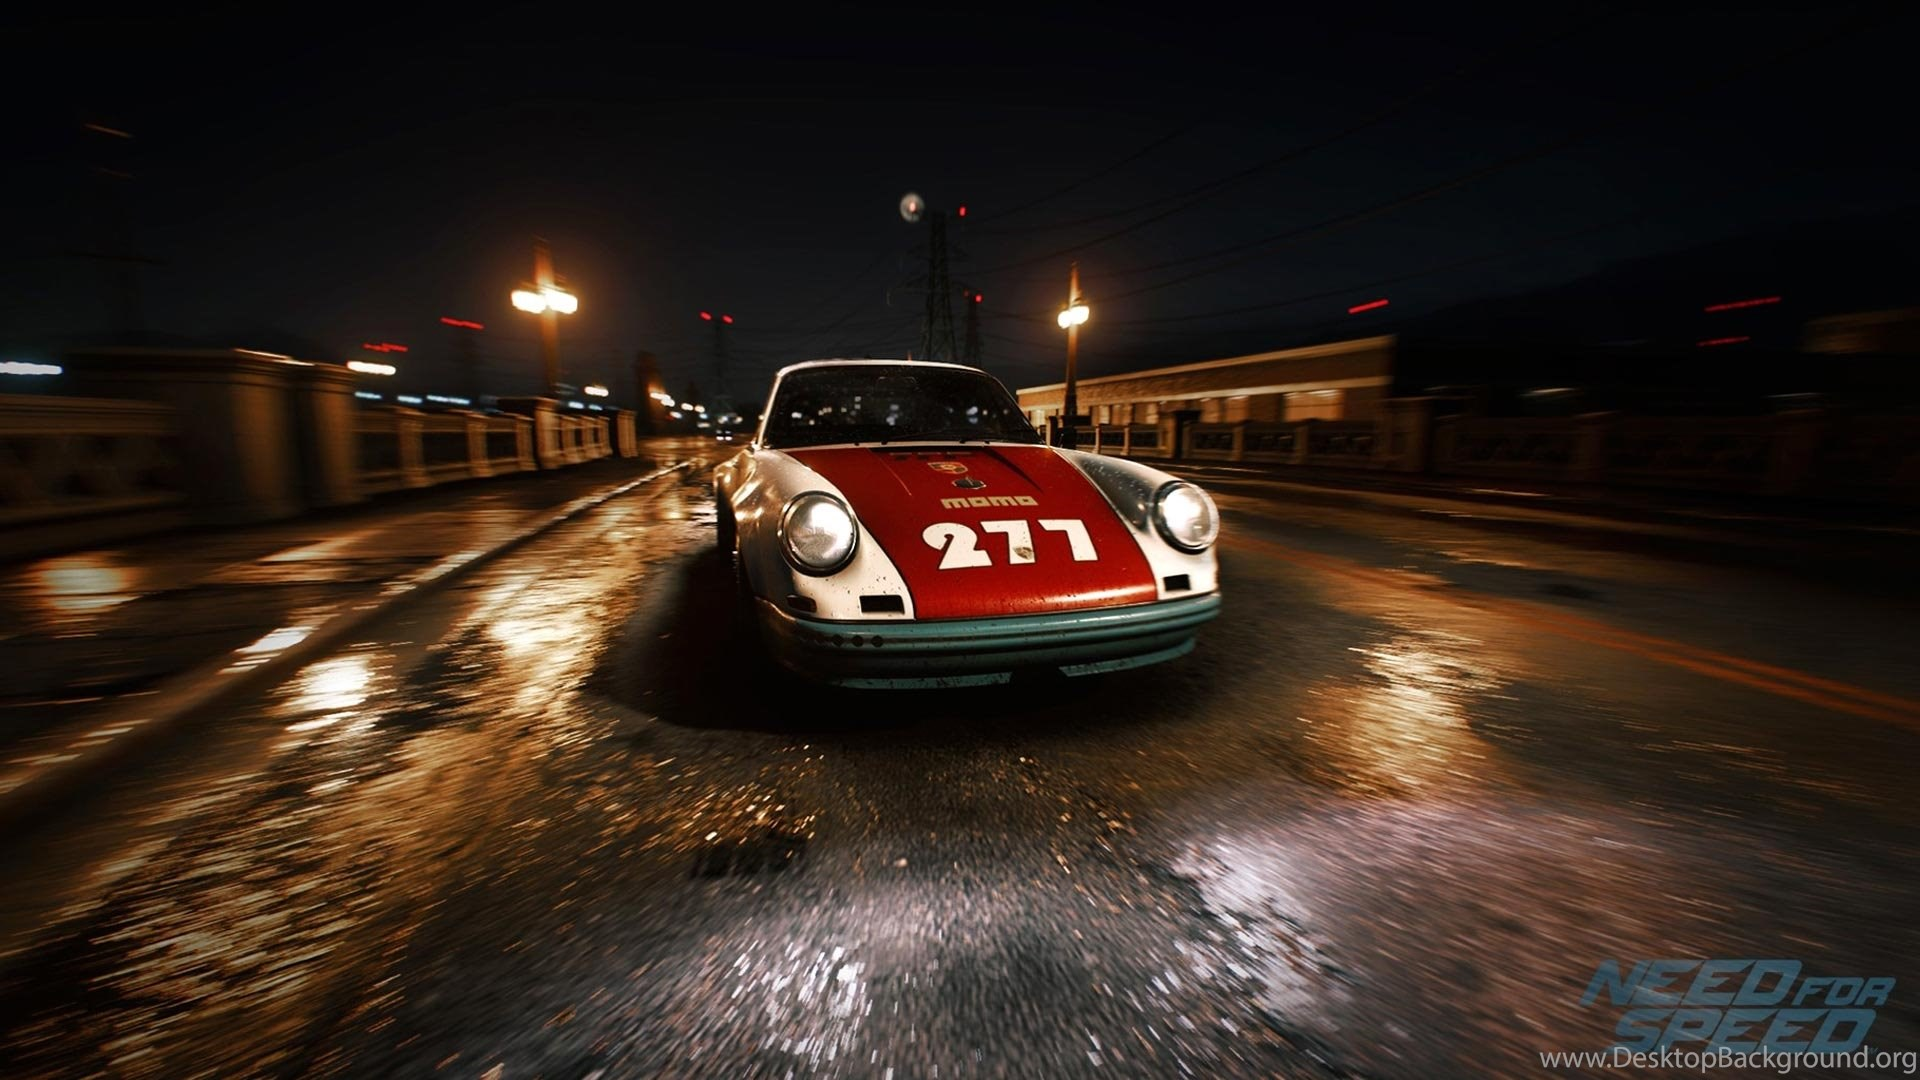 Need For Speed 2015 Wallpapers Free Full Hd Wallpapers For 1080p